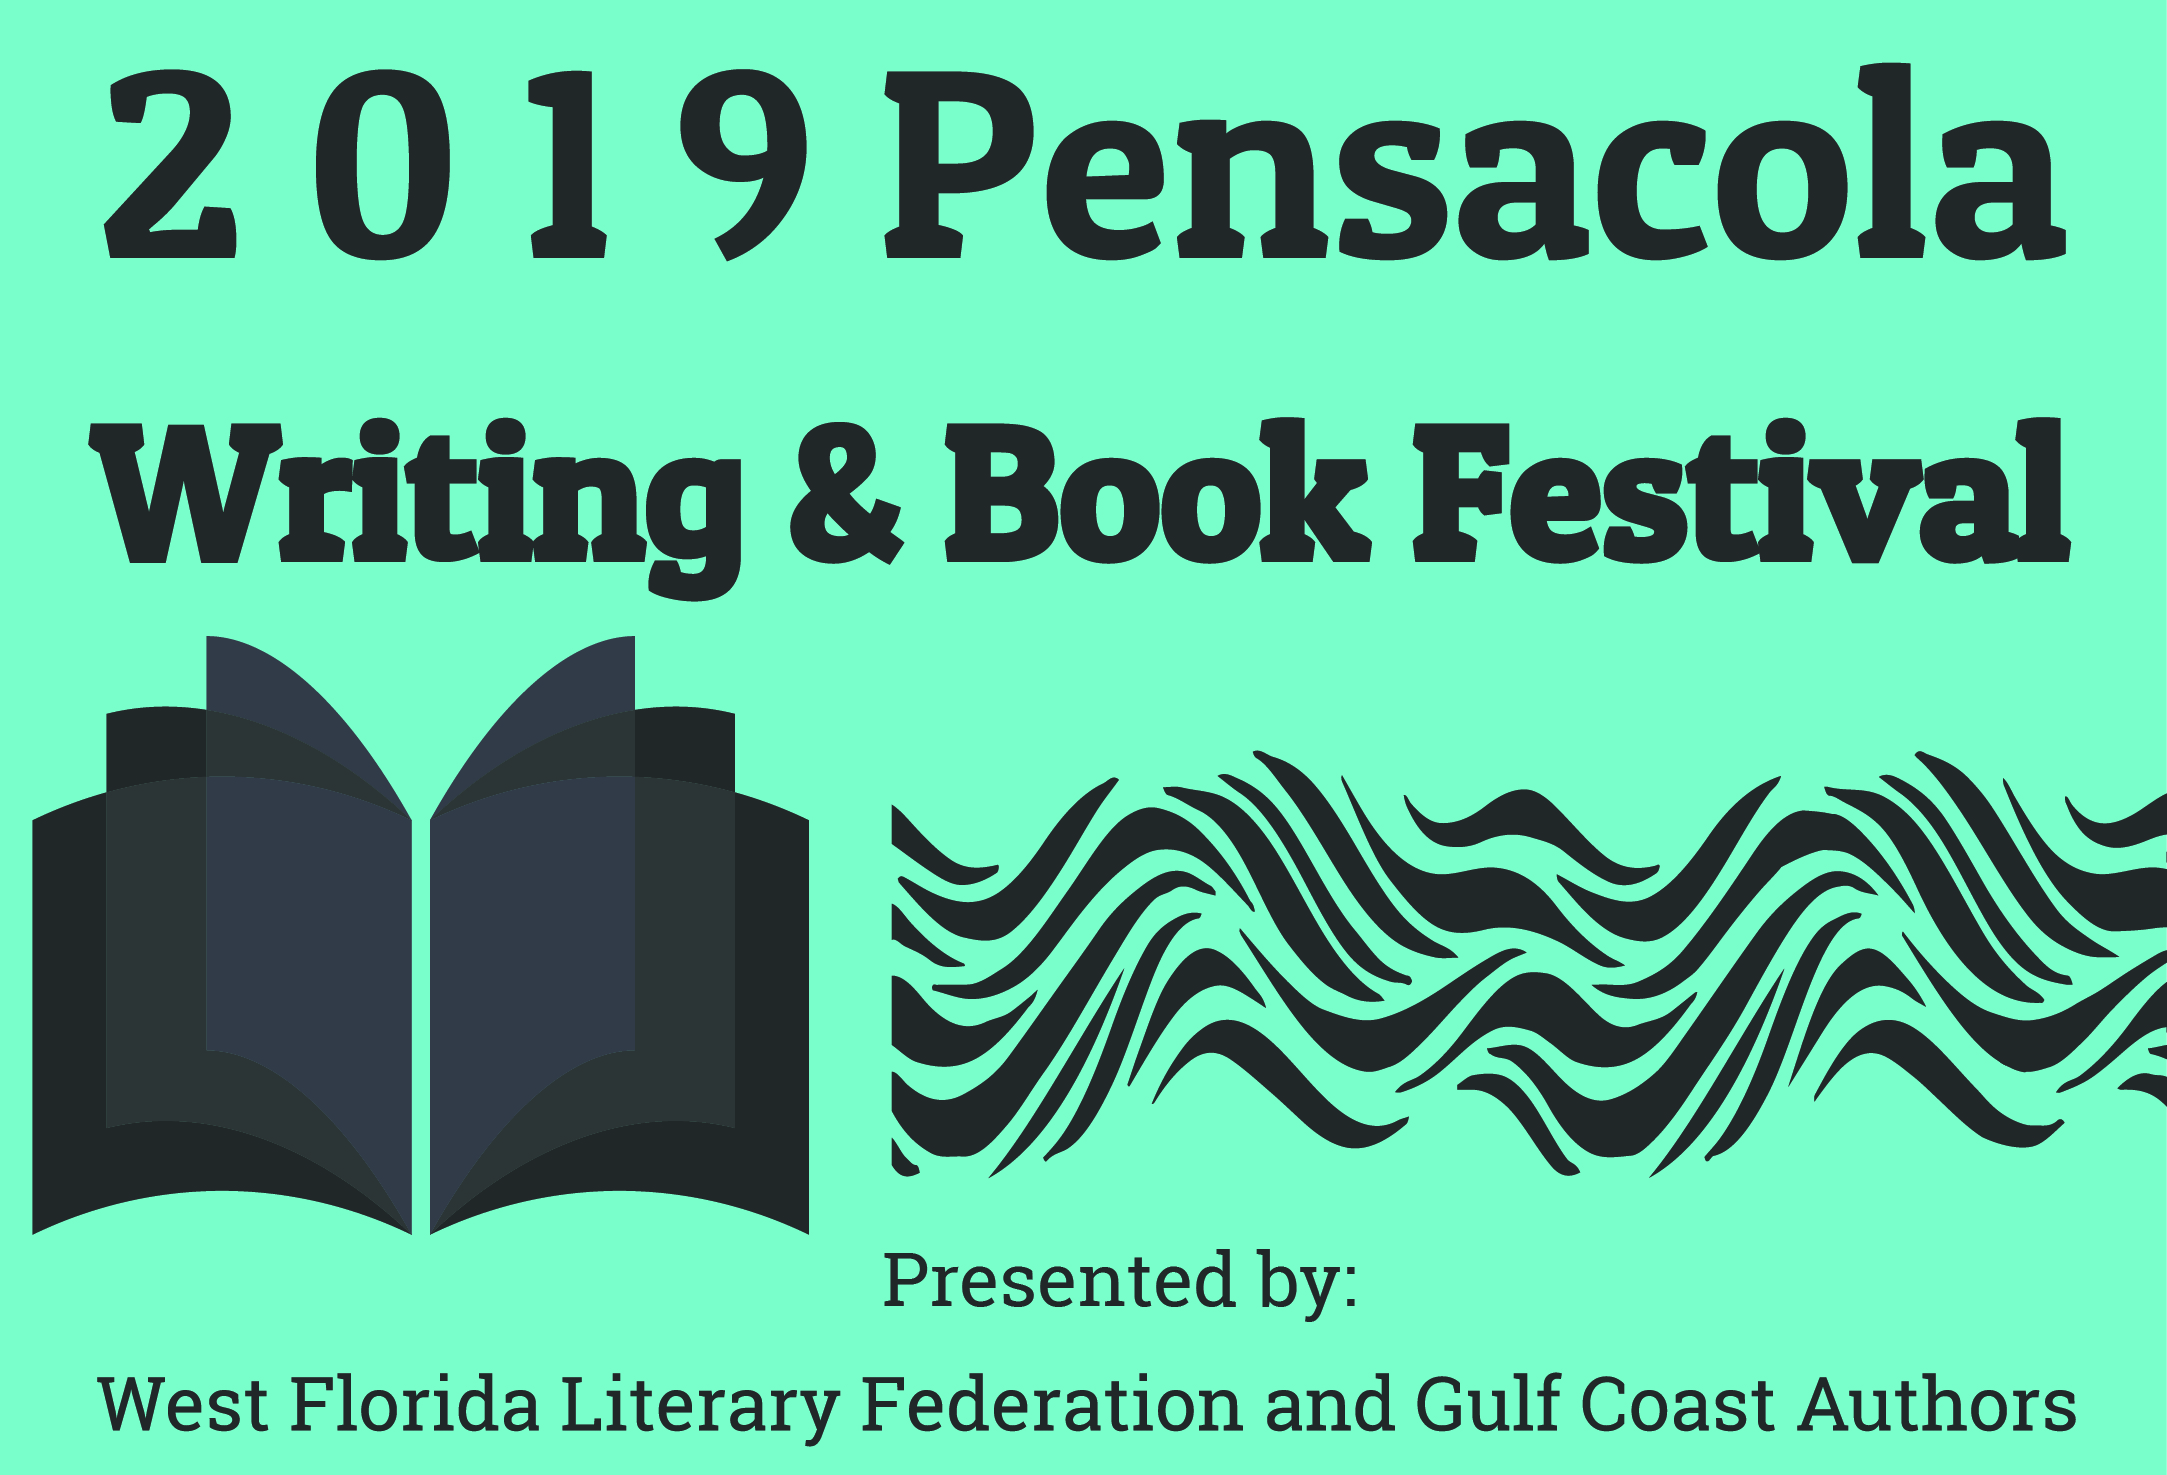 2019 Pensacola Writing and Book Festival